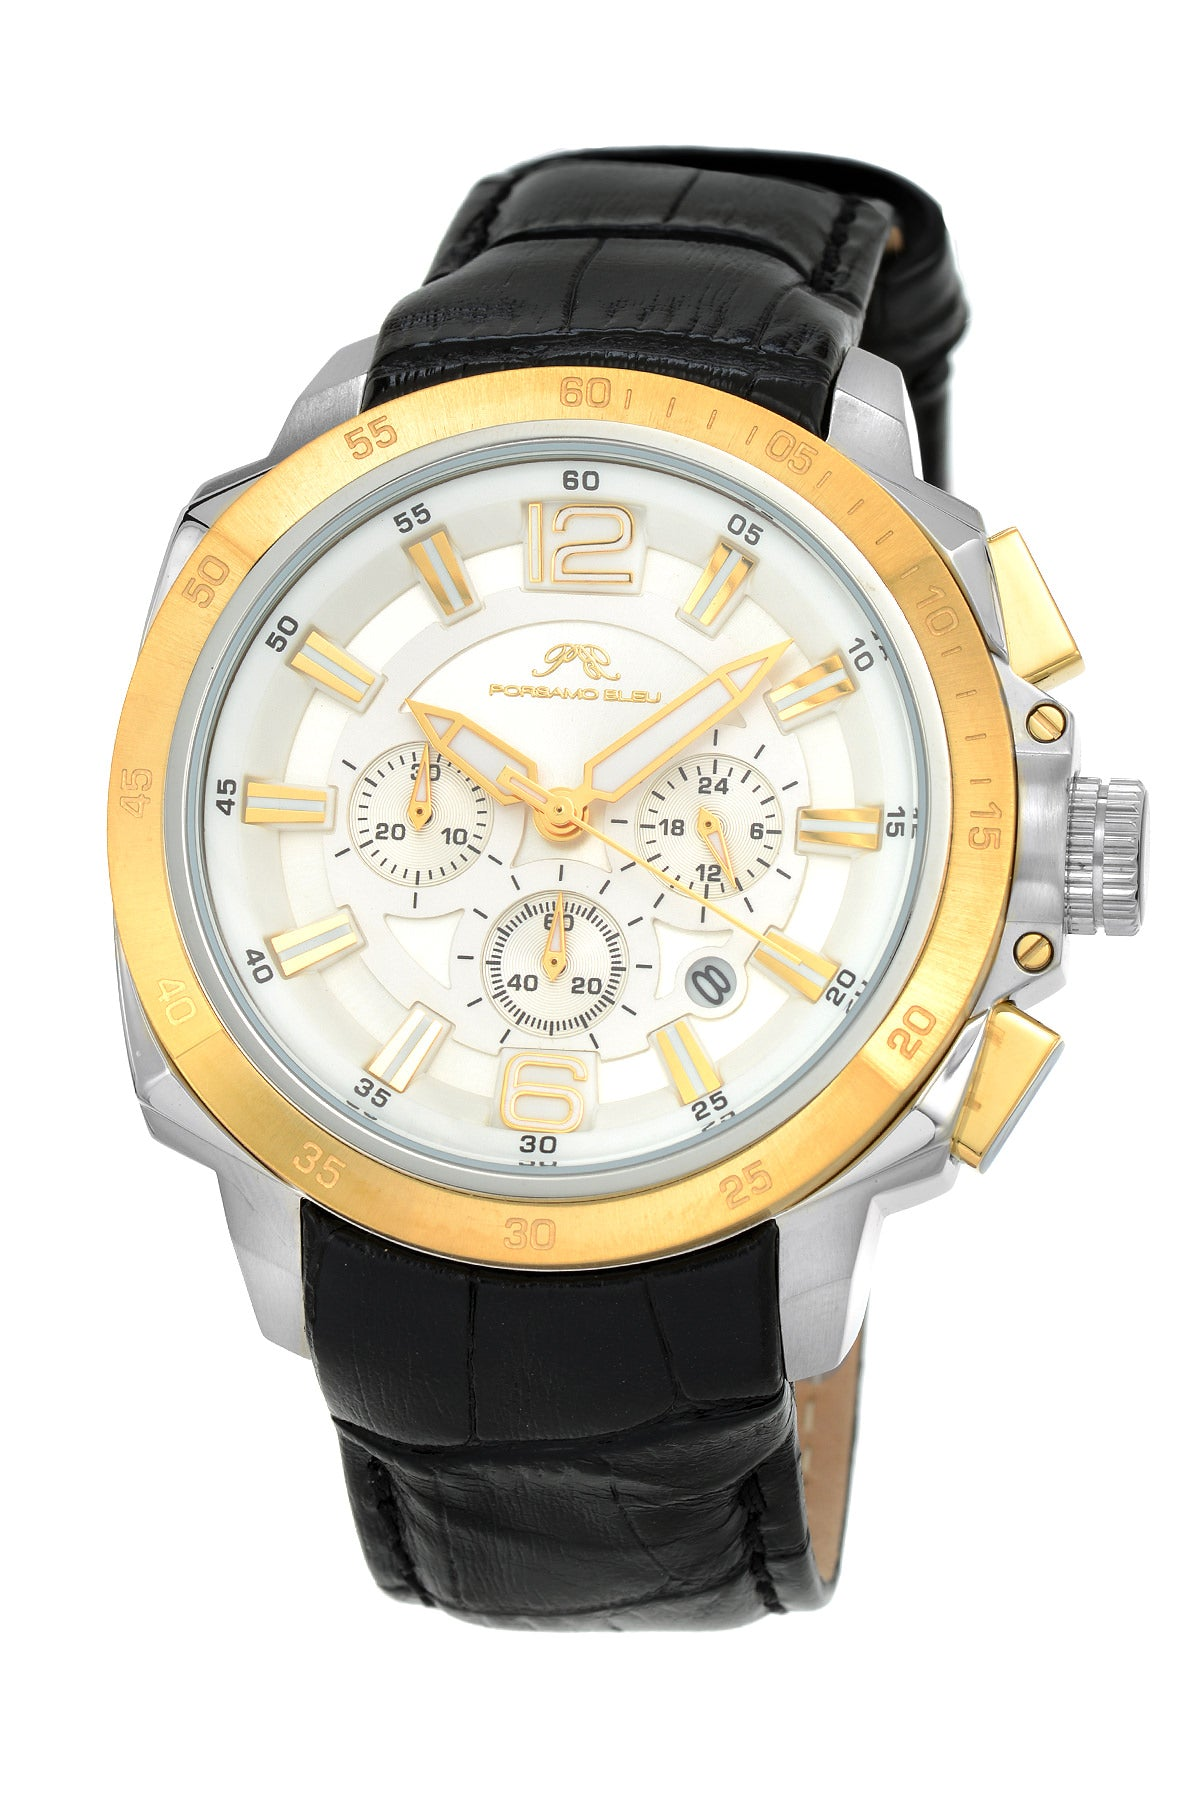 Porsamo Bleu Olivier luxury chronograph men's watch, genuine leather band, gold, black 322COLL